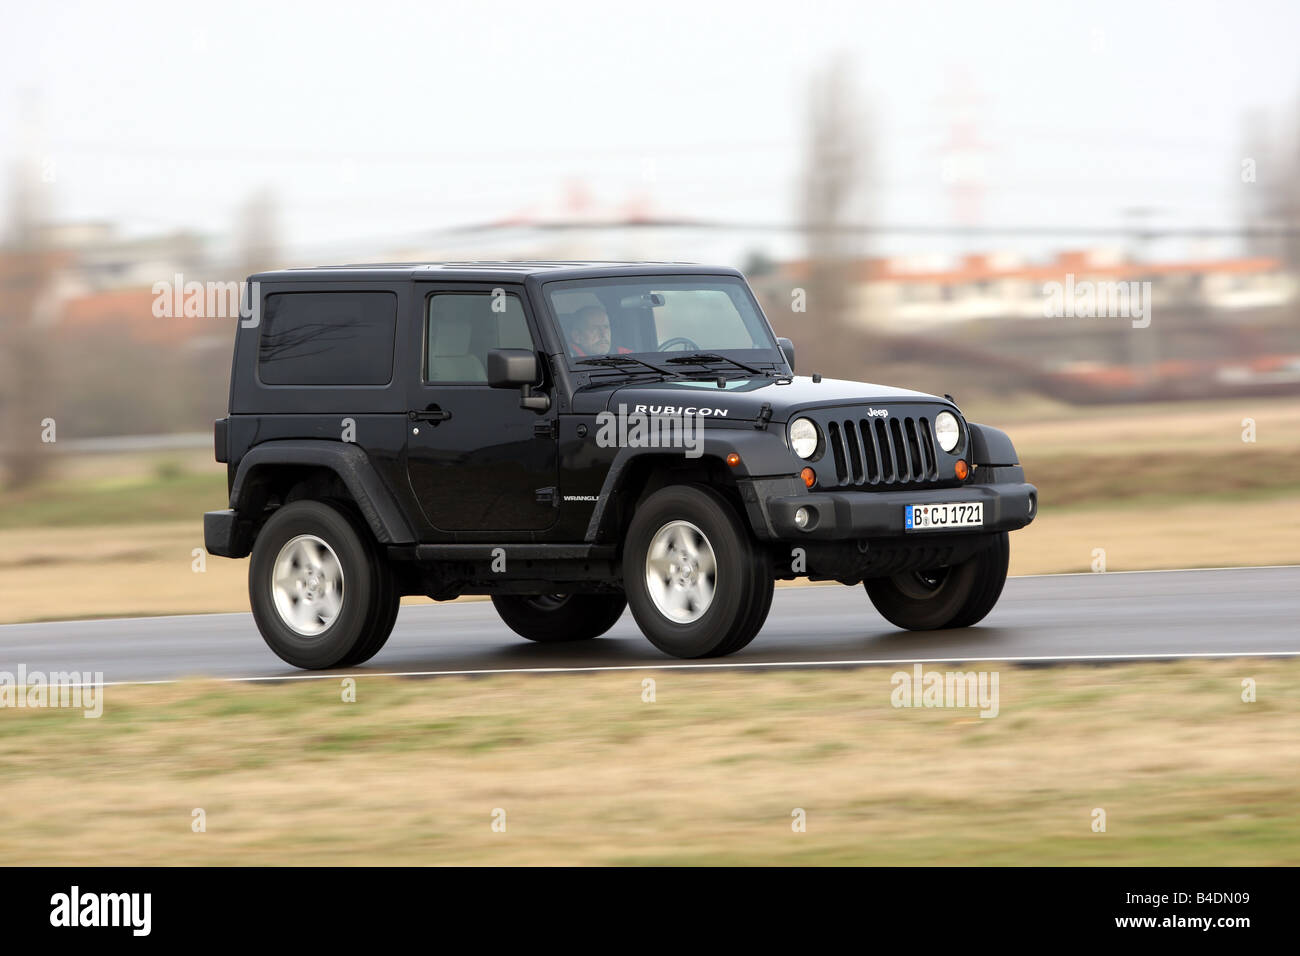 jeep wrangler rubicon 3 8 model year 2008 black driving diagonal stock photo royalty free. Black Bedroom Furniture Sets. Home Design Ideas